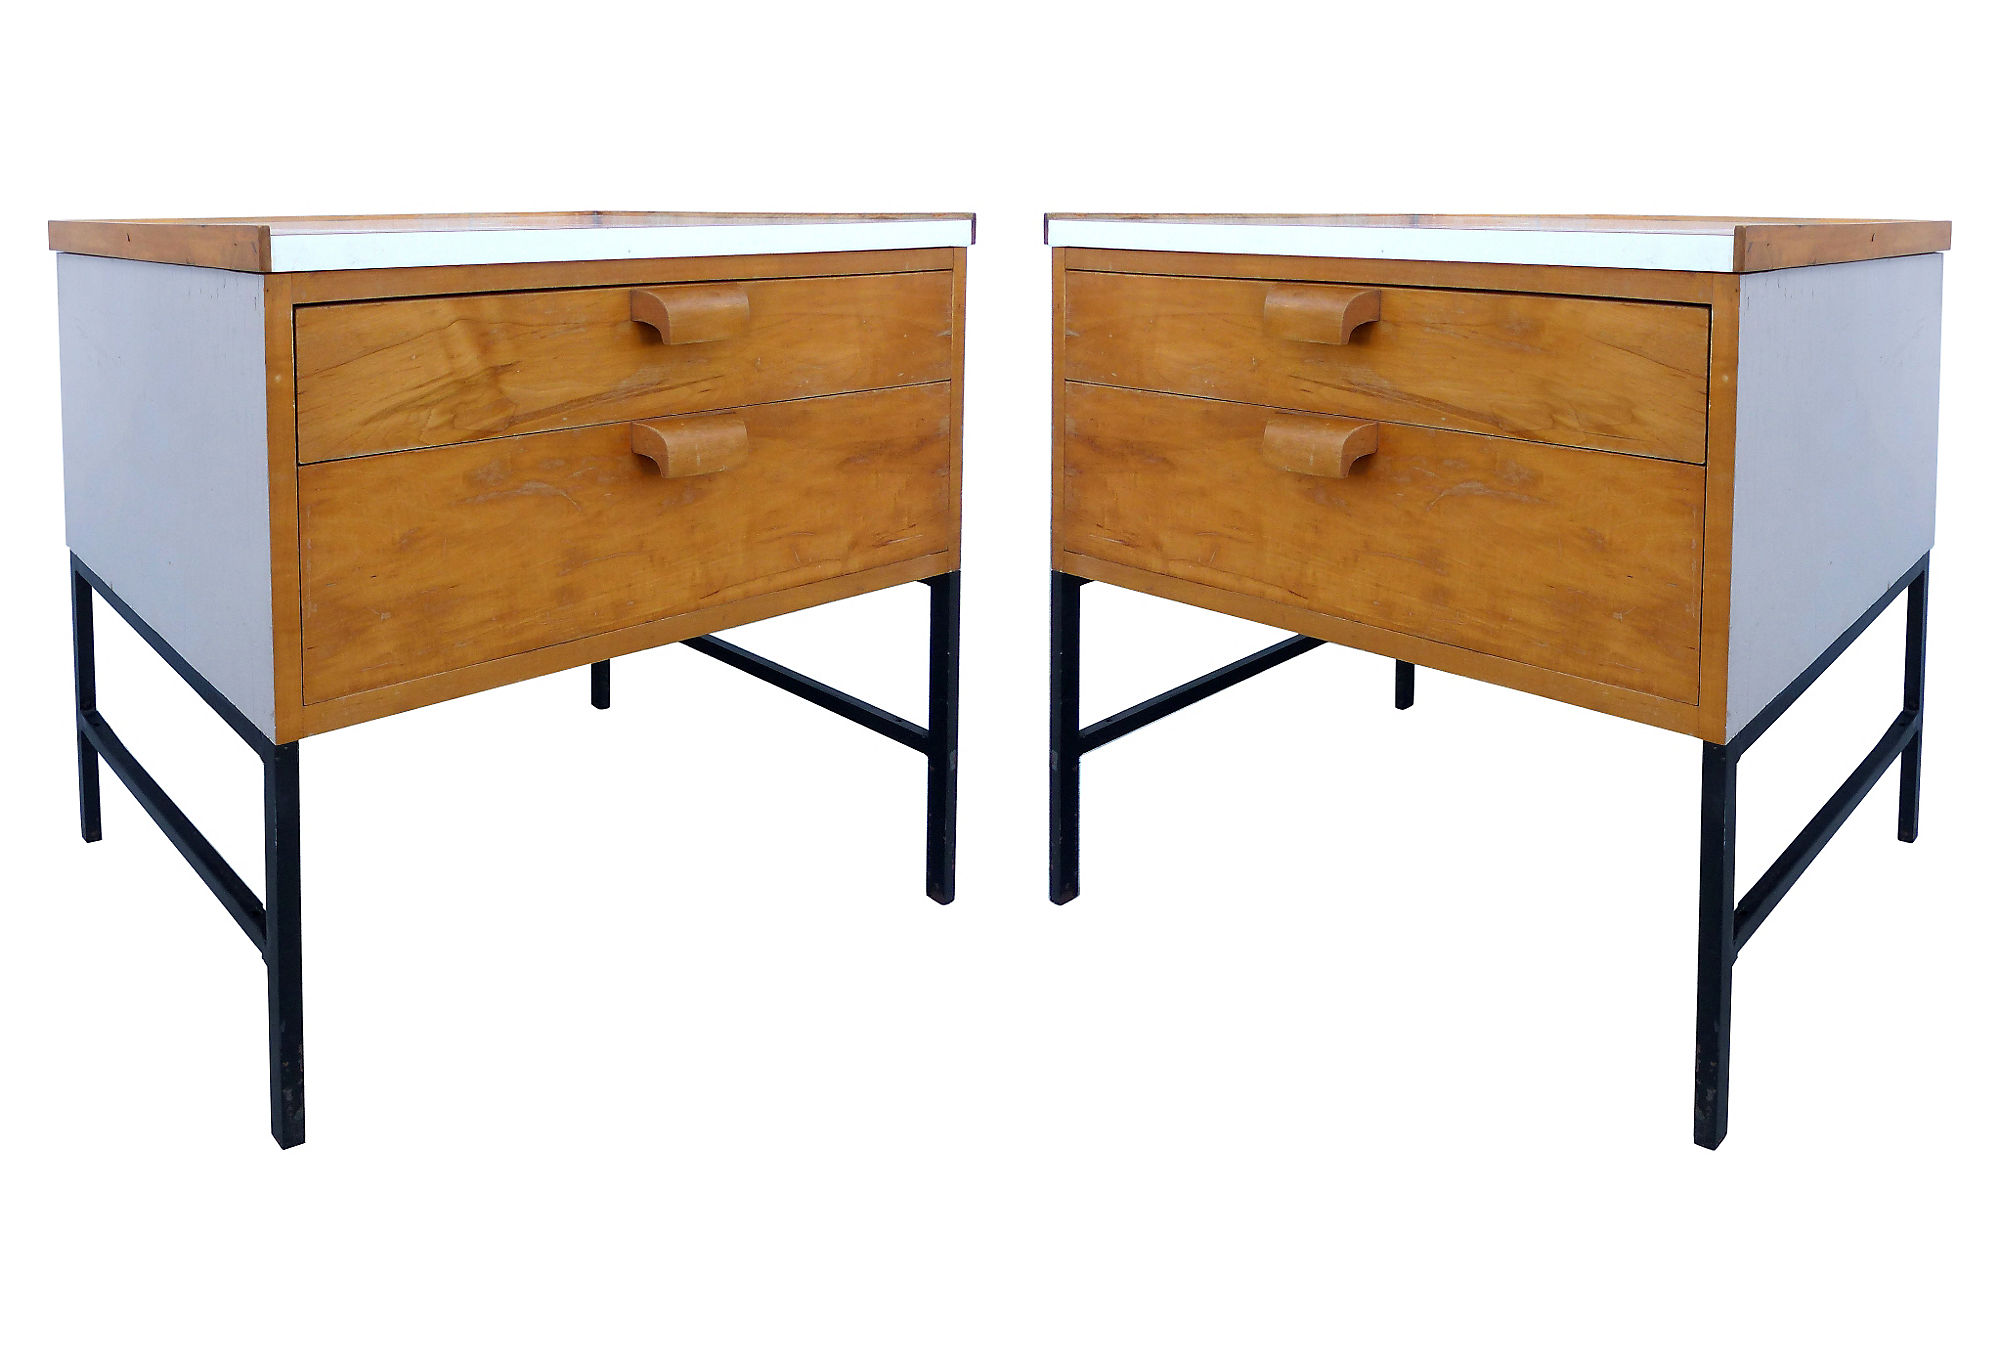 Mid century modern nightstands by jens risom for knoll